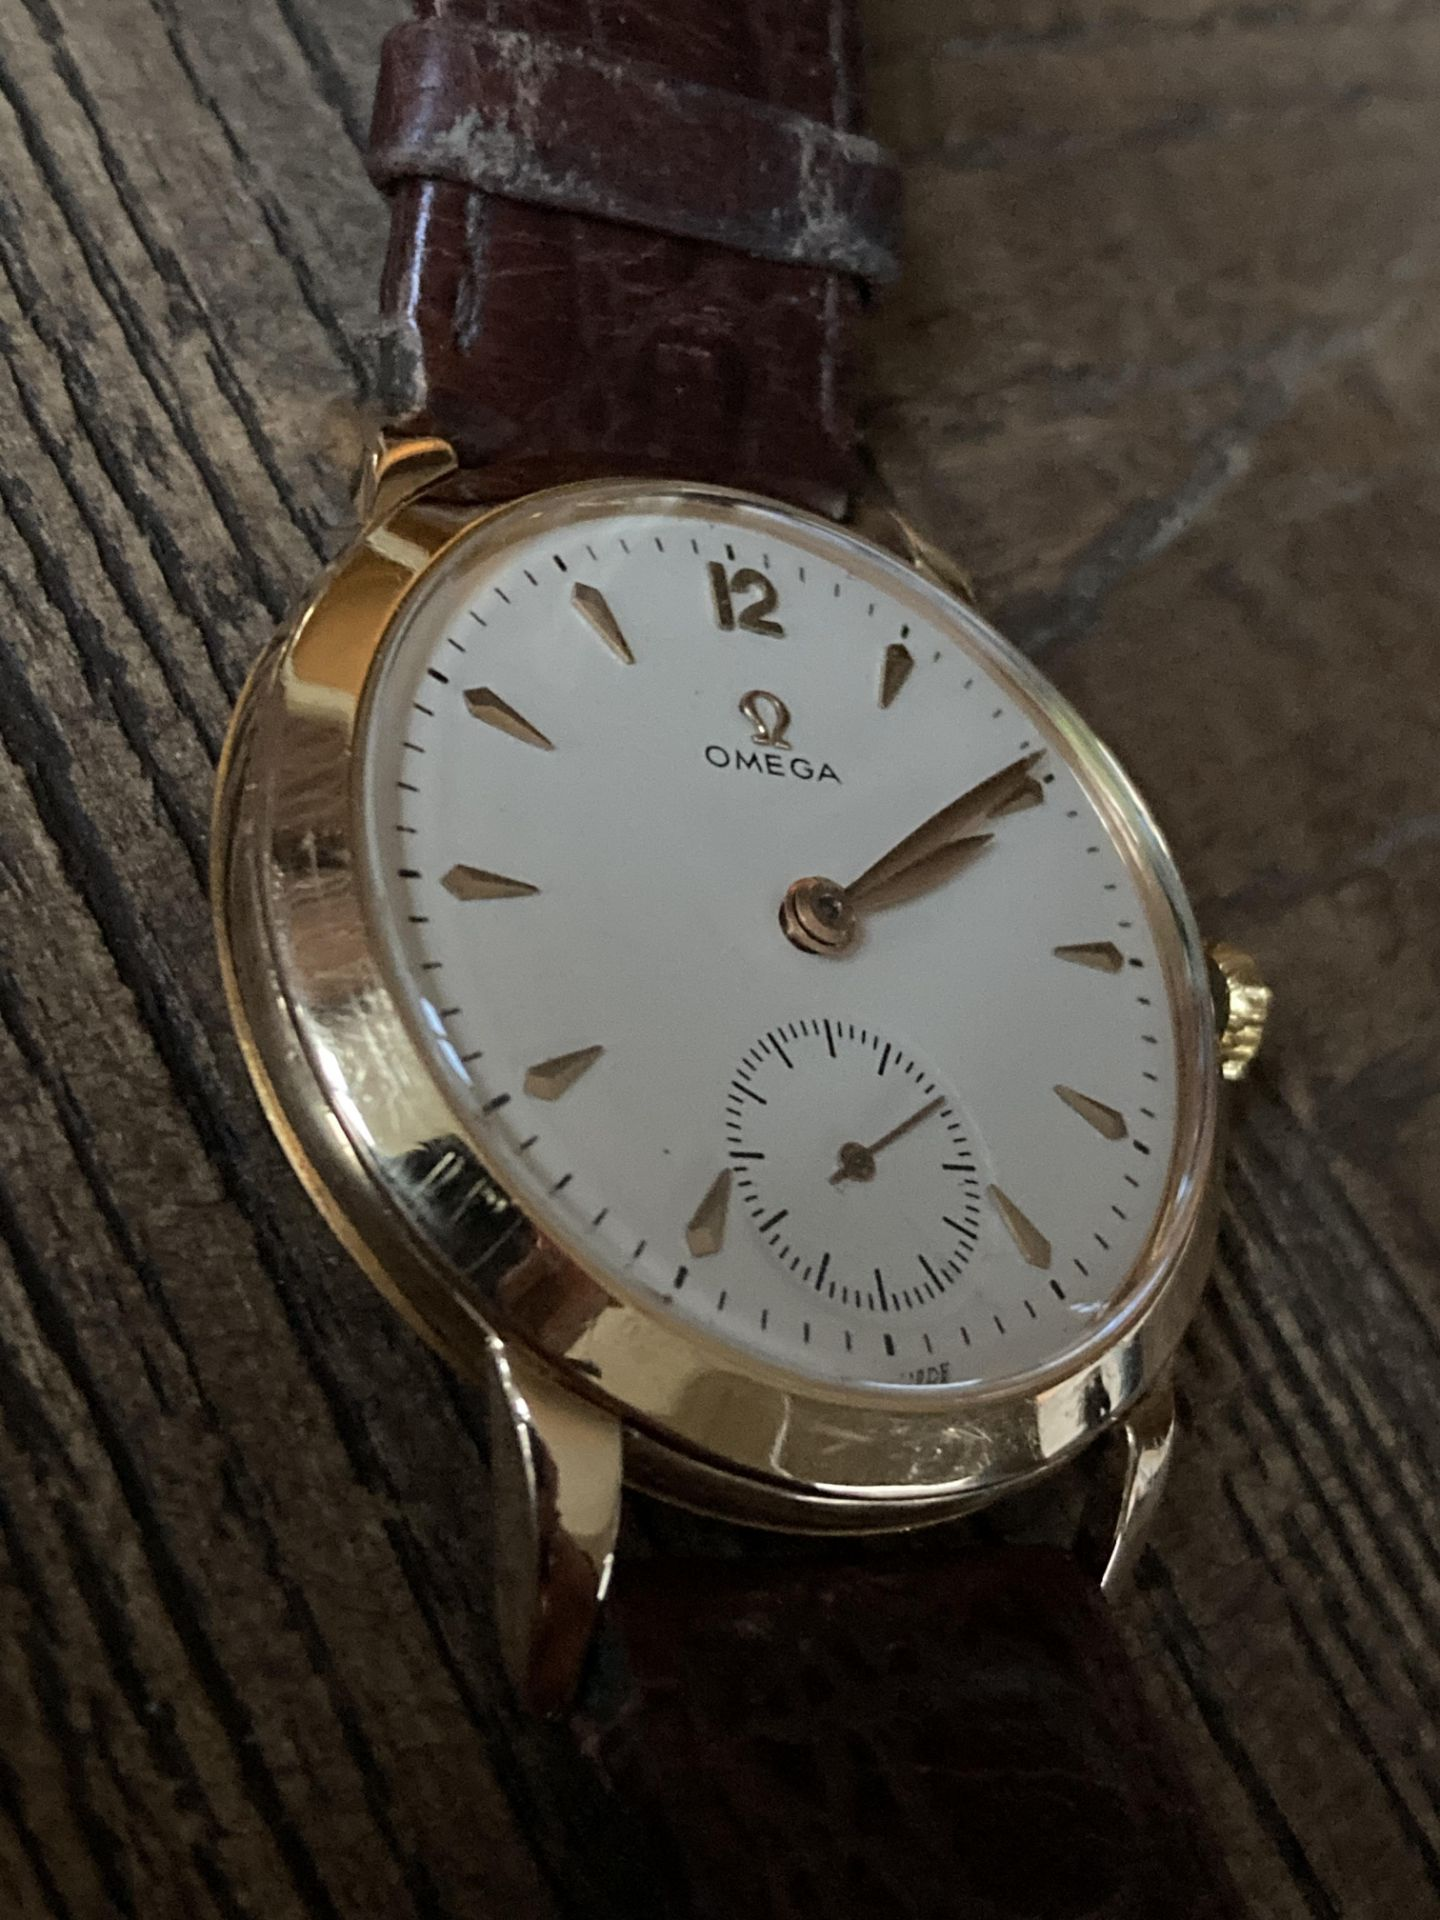 GOLD OMEGA DRESS WATCH - 35mm - Image 2 of 3